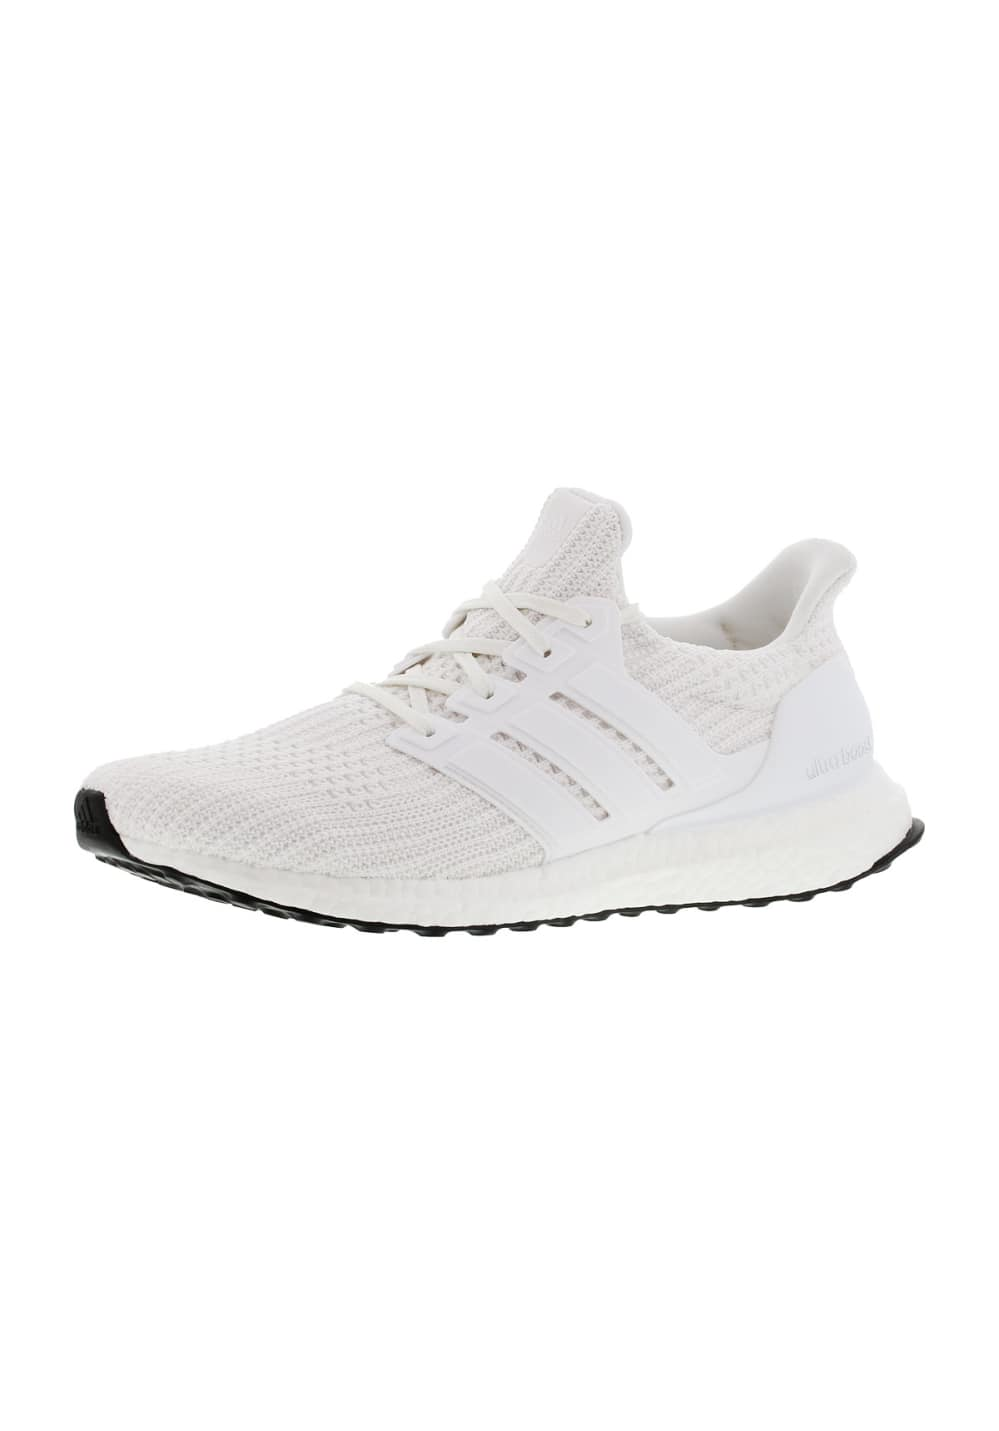 info pour 1fb91 21ee5 adidas Ultra Boost - Running shoes for Men - White